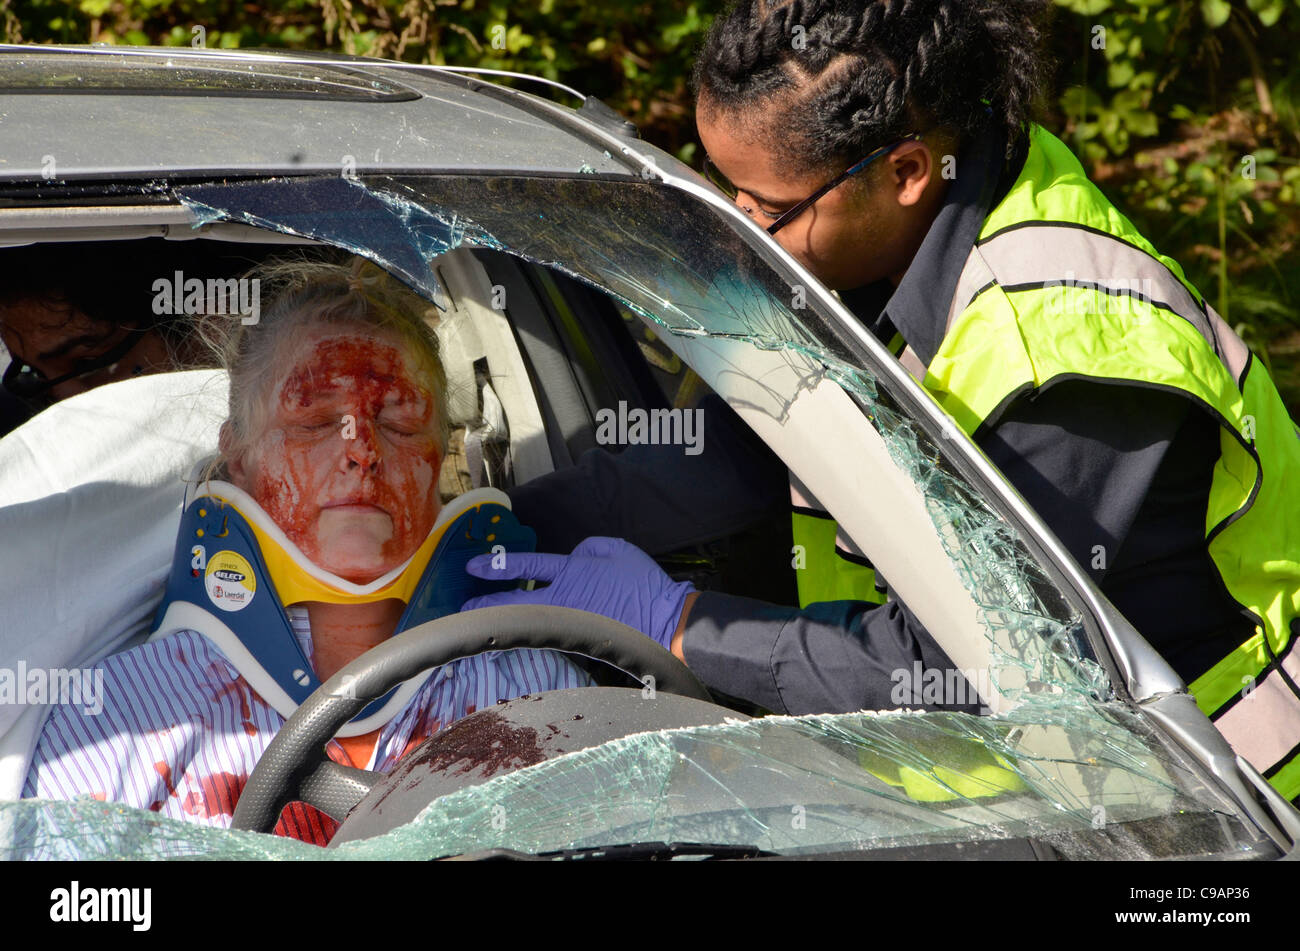 medic comforts injured woman in a auto accident in Glendale, Maryland - Stock Image